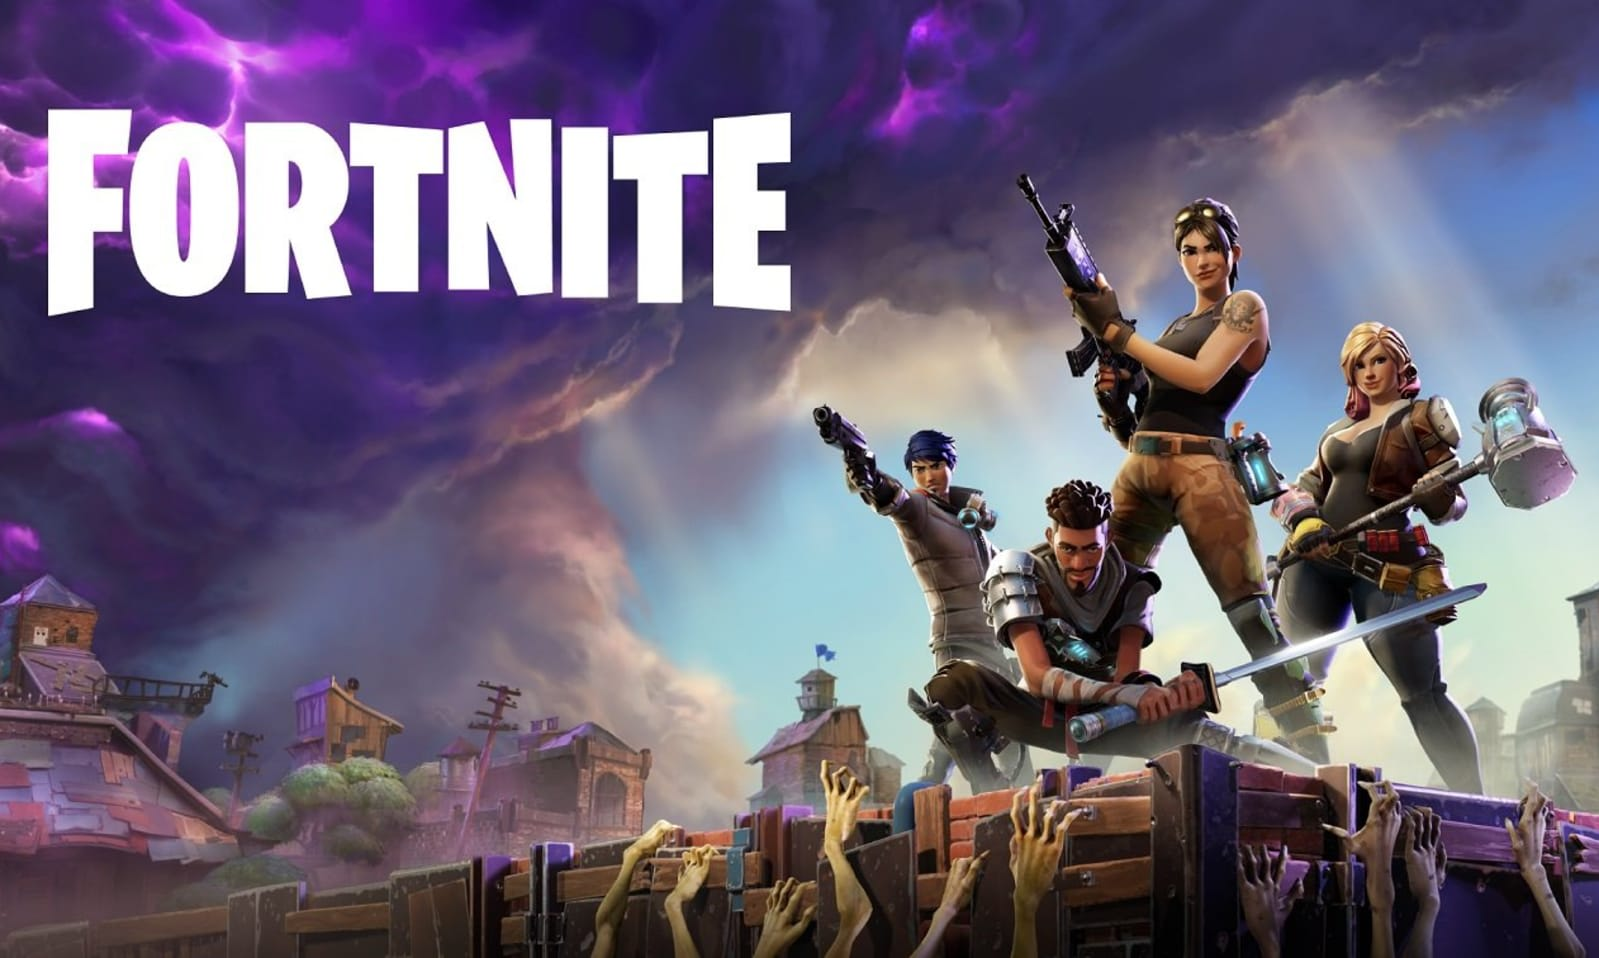 Fortnite Client fortnite' is getting a big new creative mode | engadget